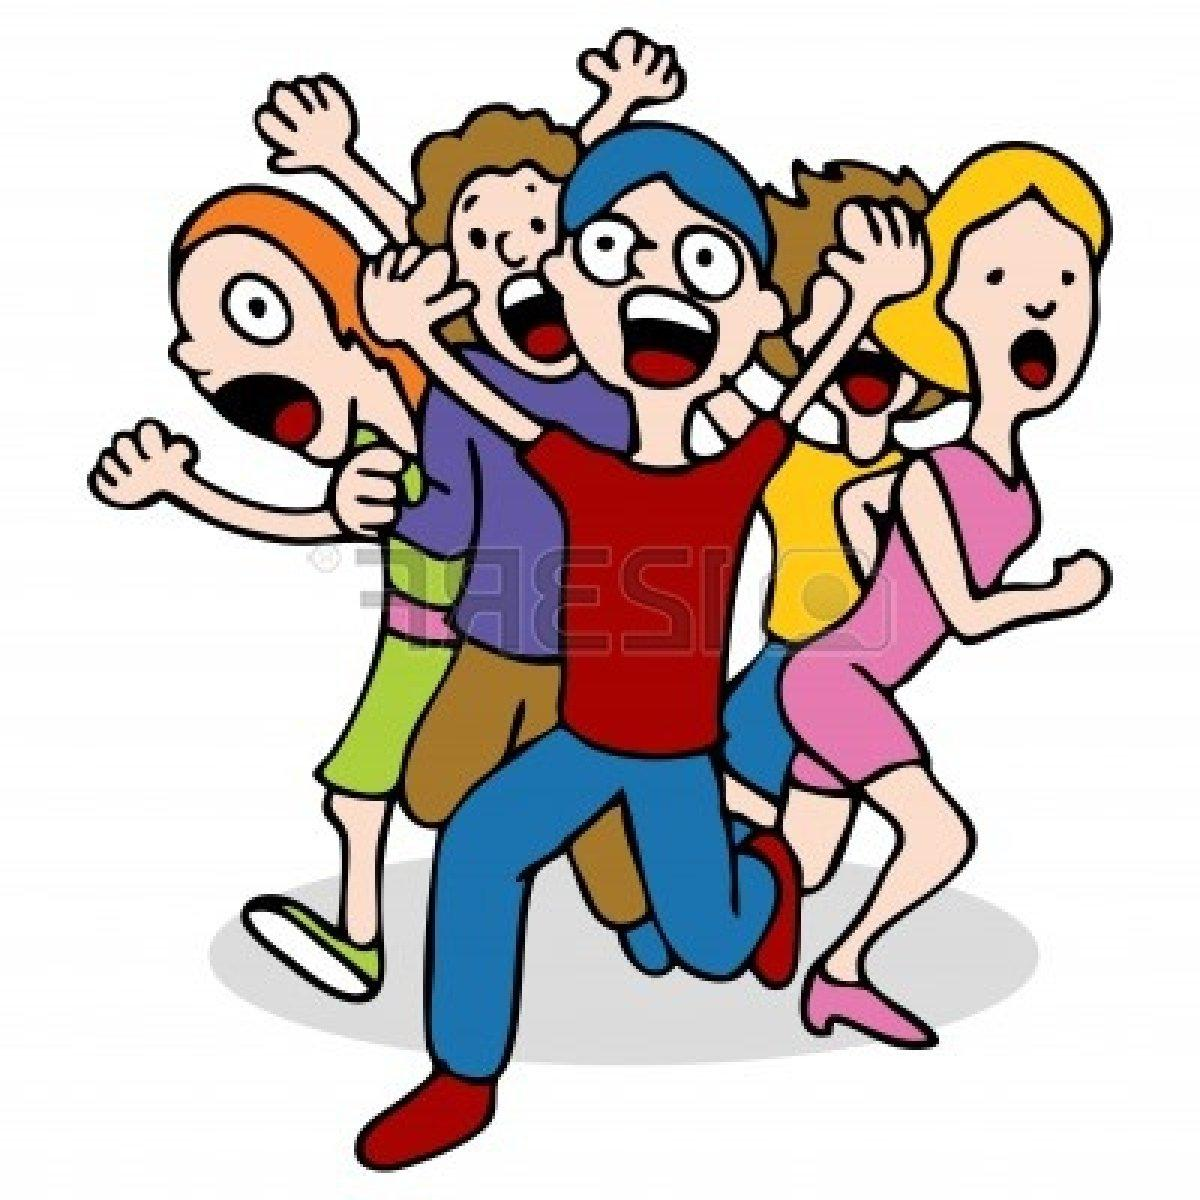 Crowd free download best. Audience clipart angry